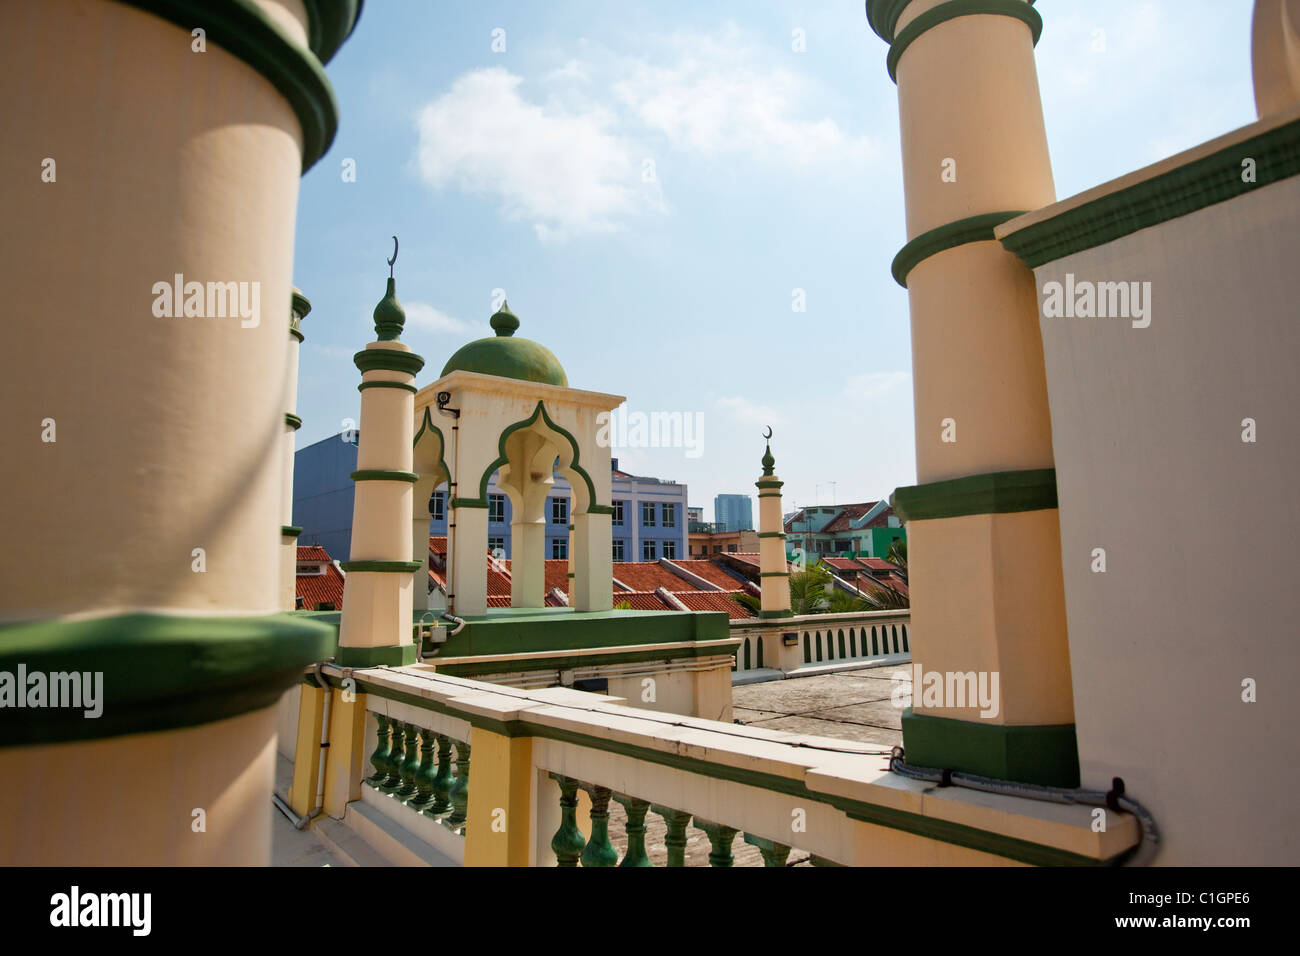 Islamic architecture of the Abdul Gaffoor Mosque.  Little India, Singapore - Stock Image